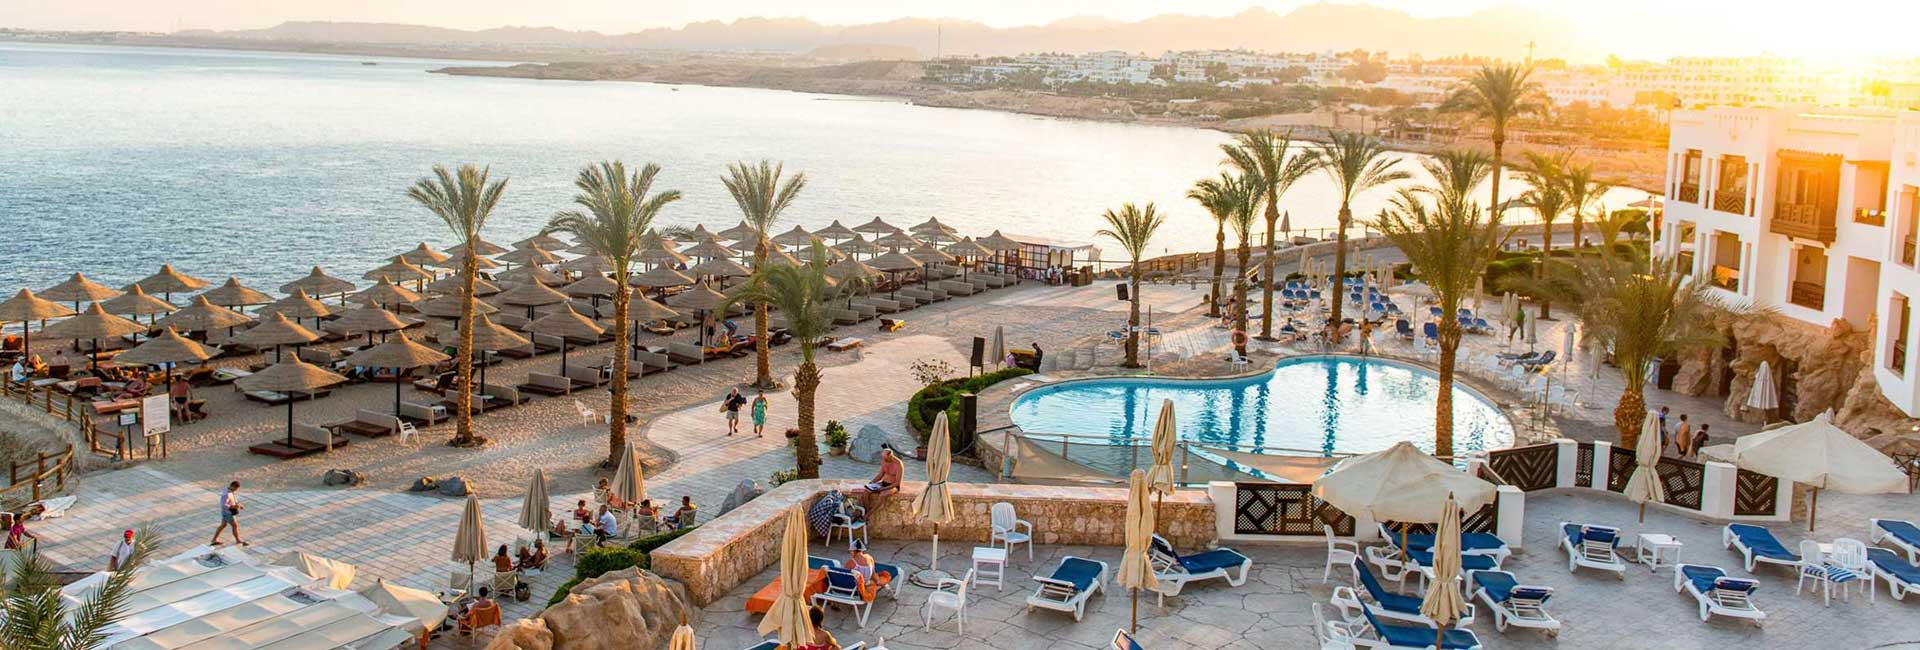 Sharm El-Sheikh Outdoor Activities